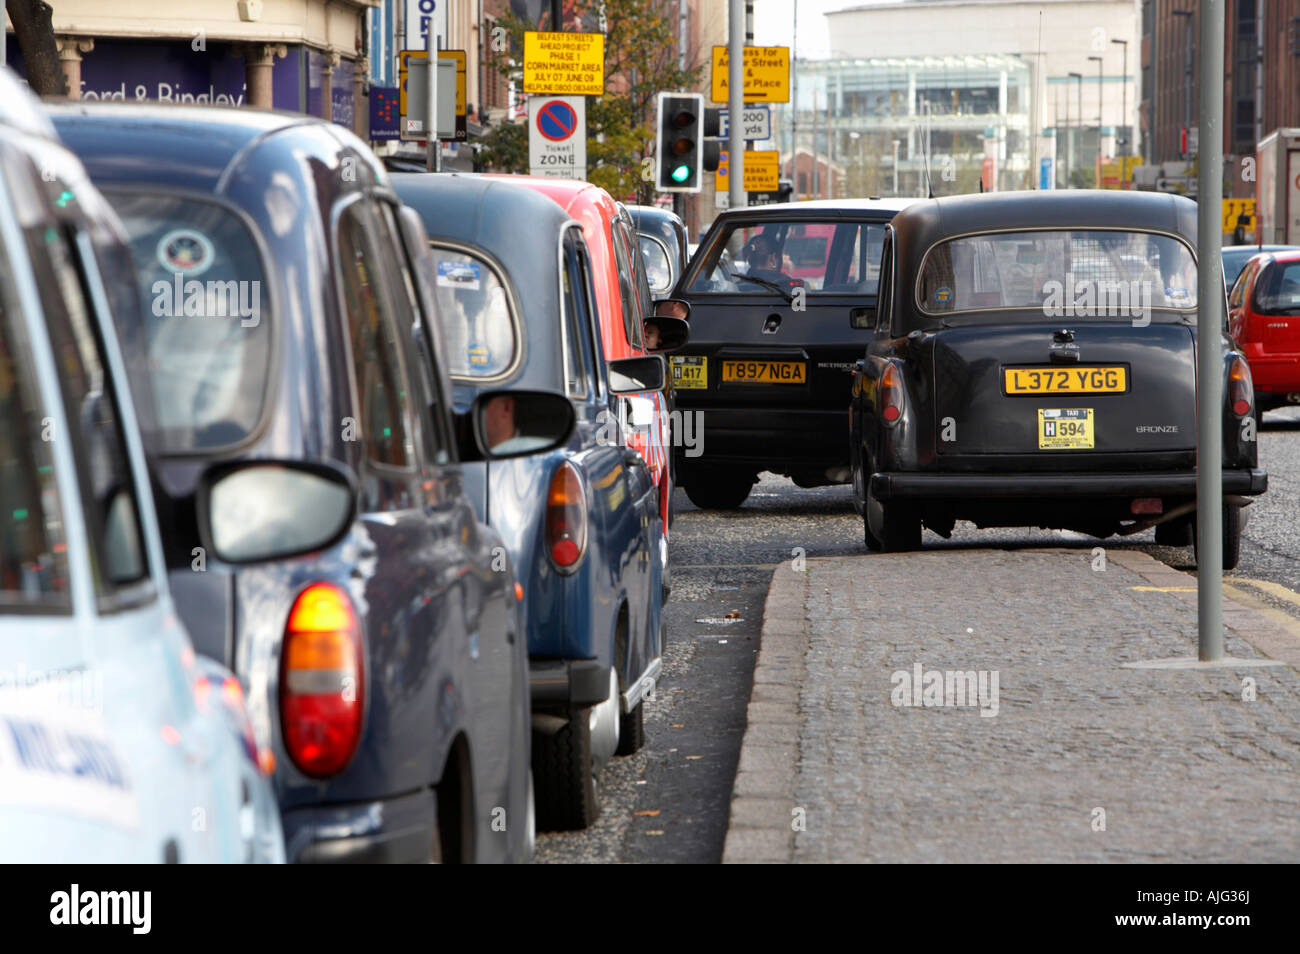 taxi leaving front of taxi rank with row of london style hackney carriage taxis lined up in Belfast City Centre - Stock Image